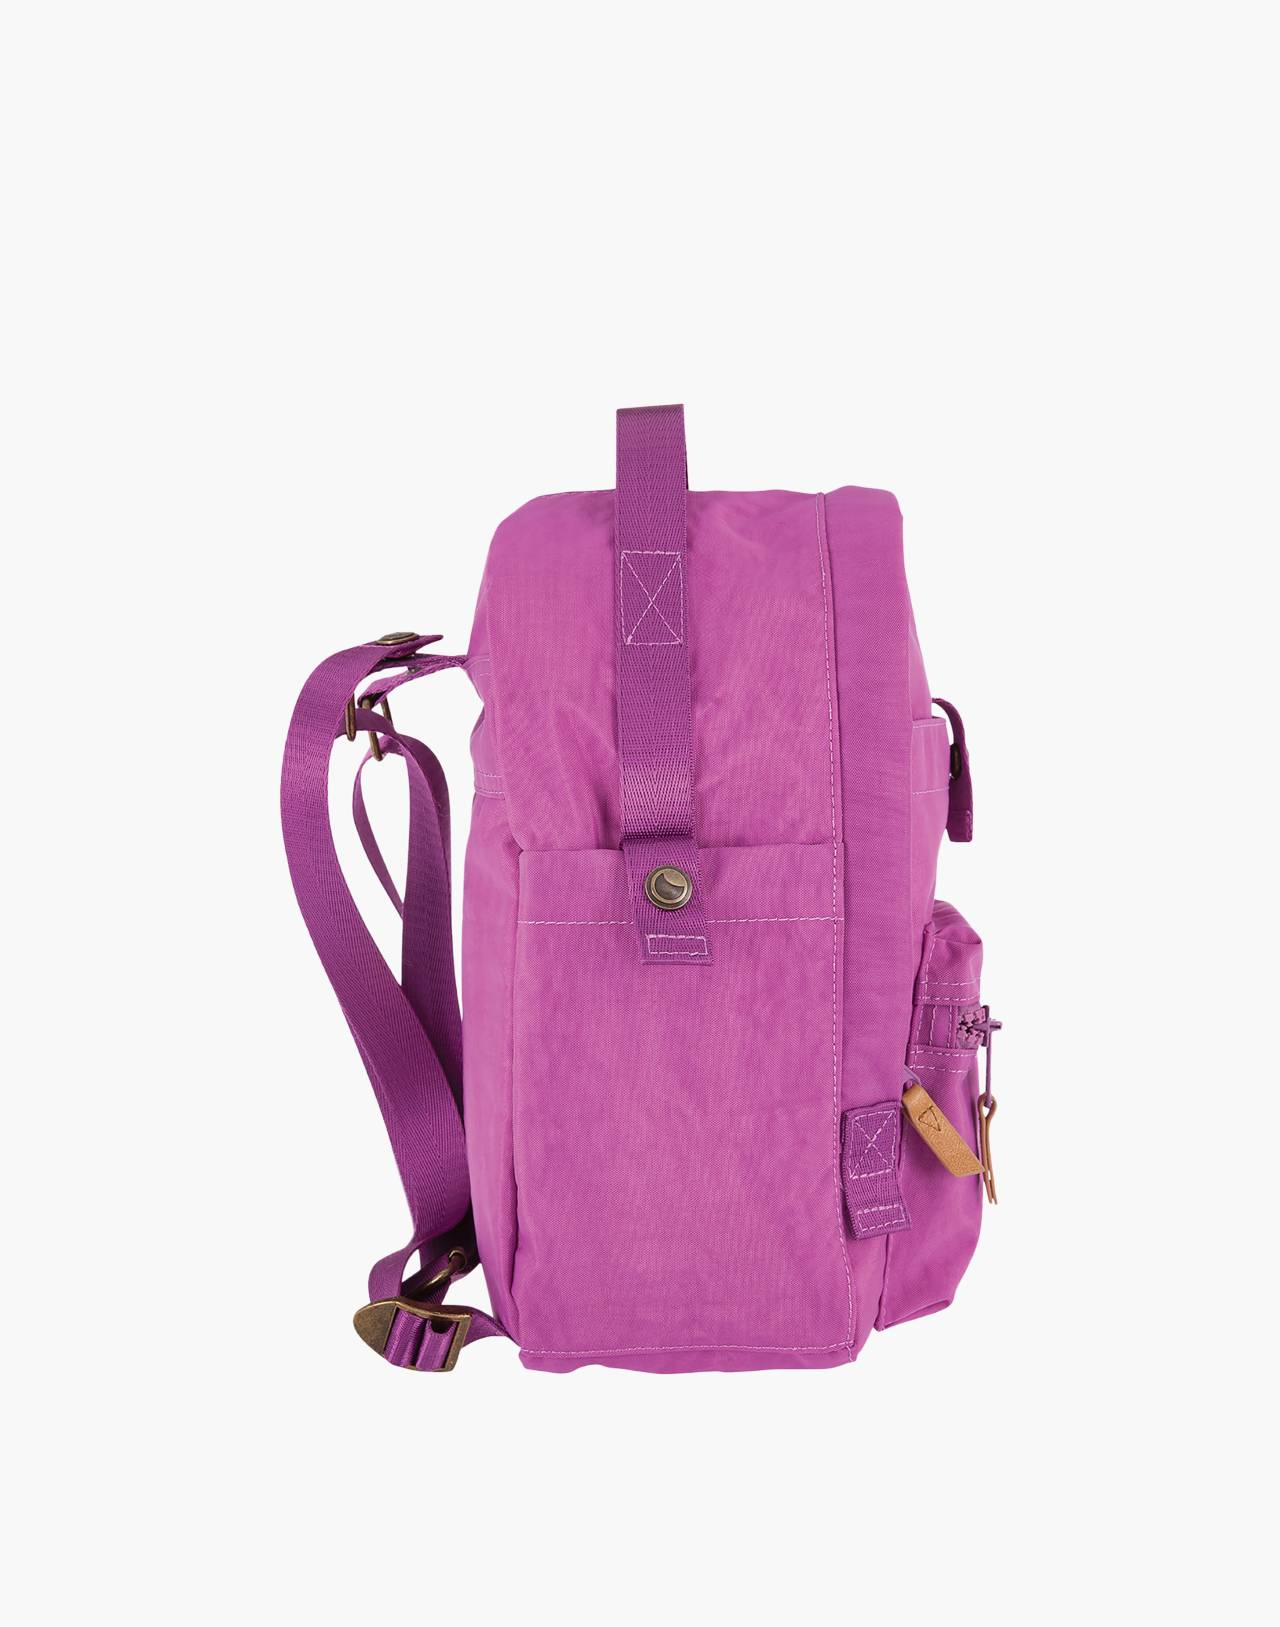 LOLA™ Mondo Utopian Small Backpack in purple image 3